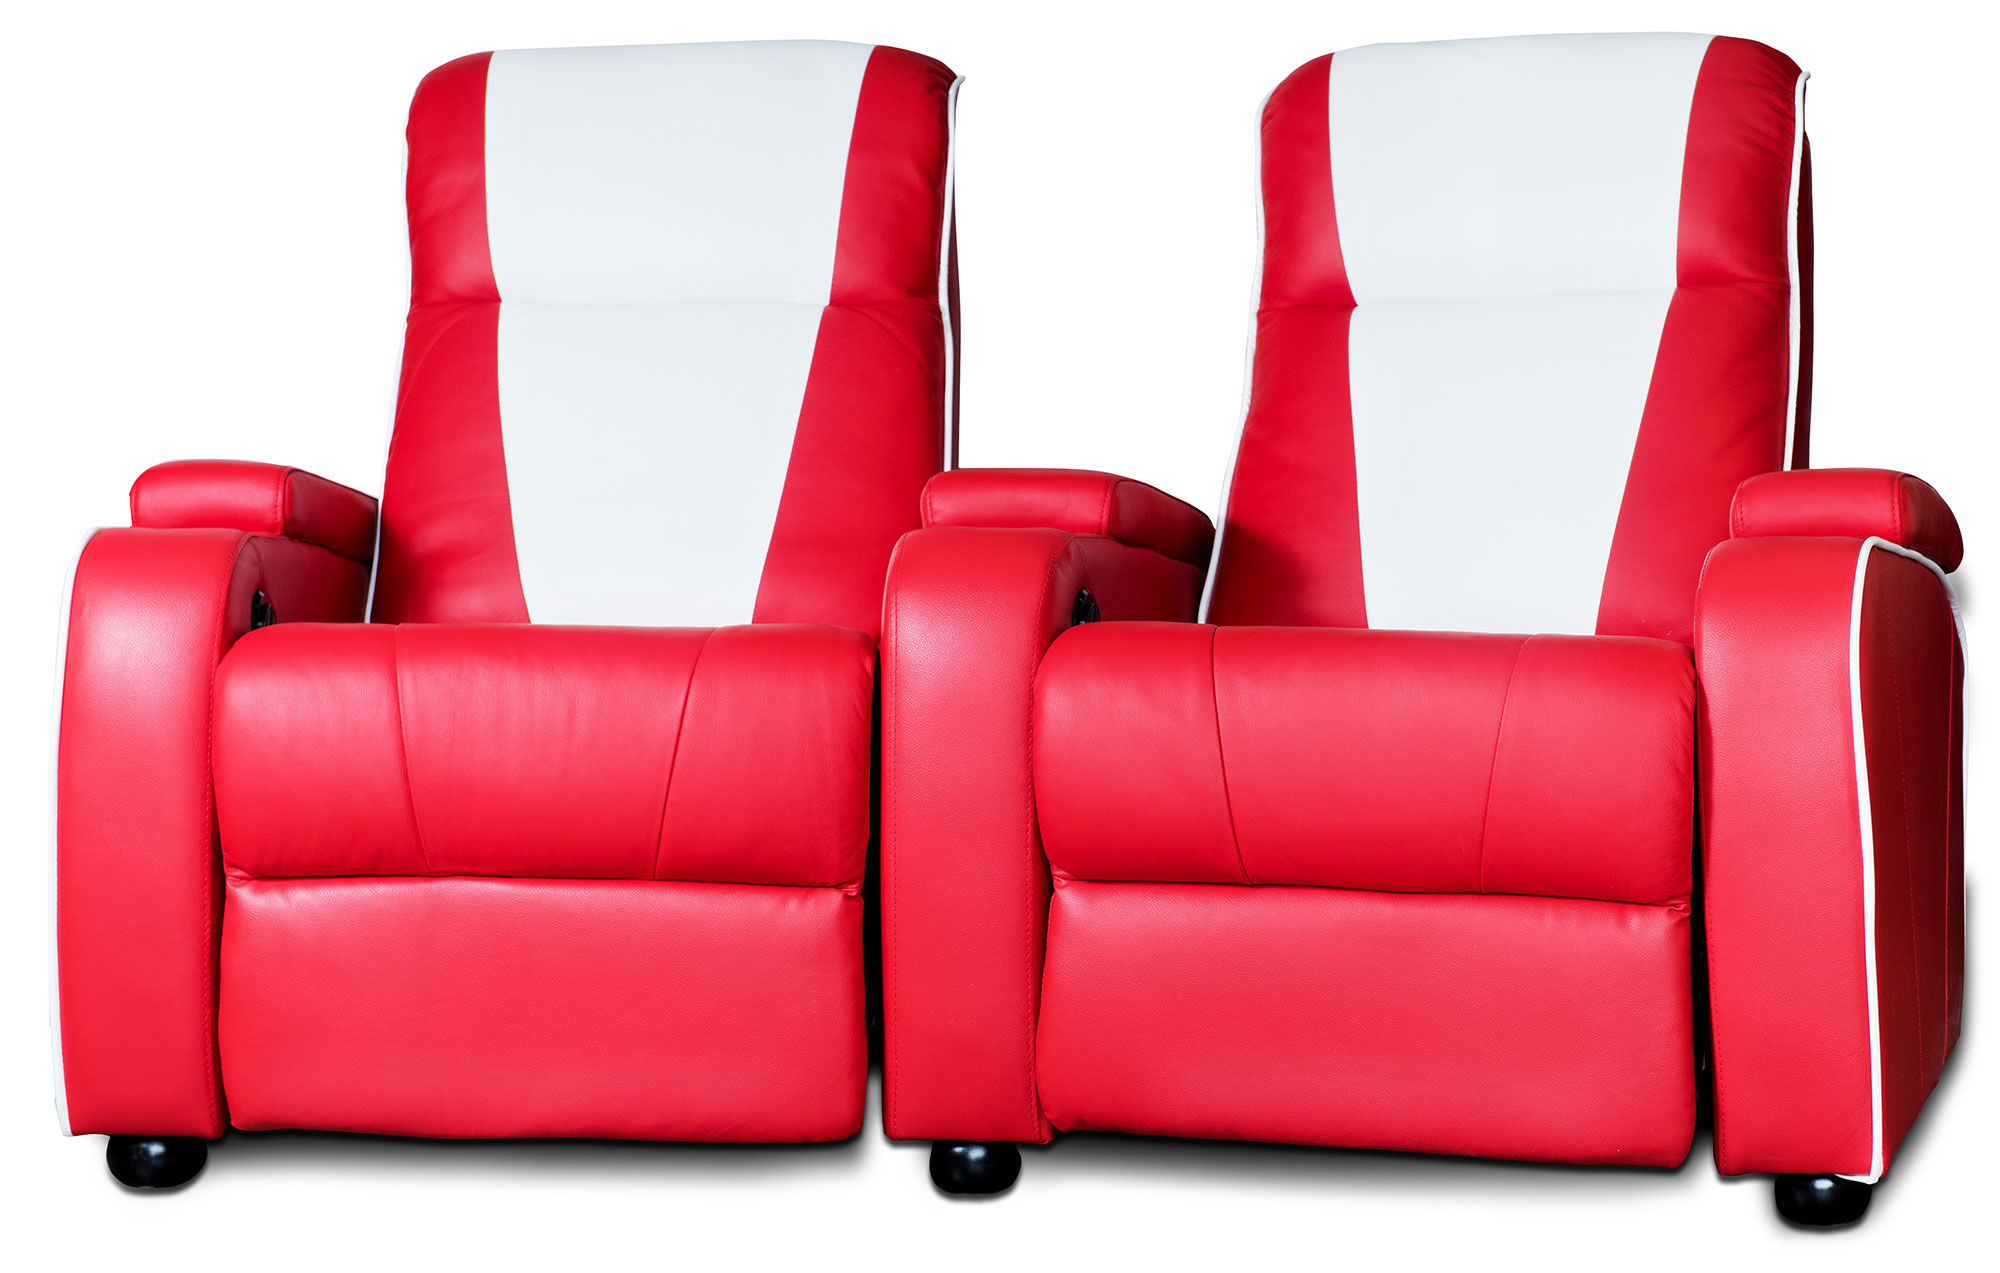 Home Cinema Sessel Metro Home Cinema Chair Double Red